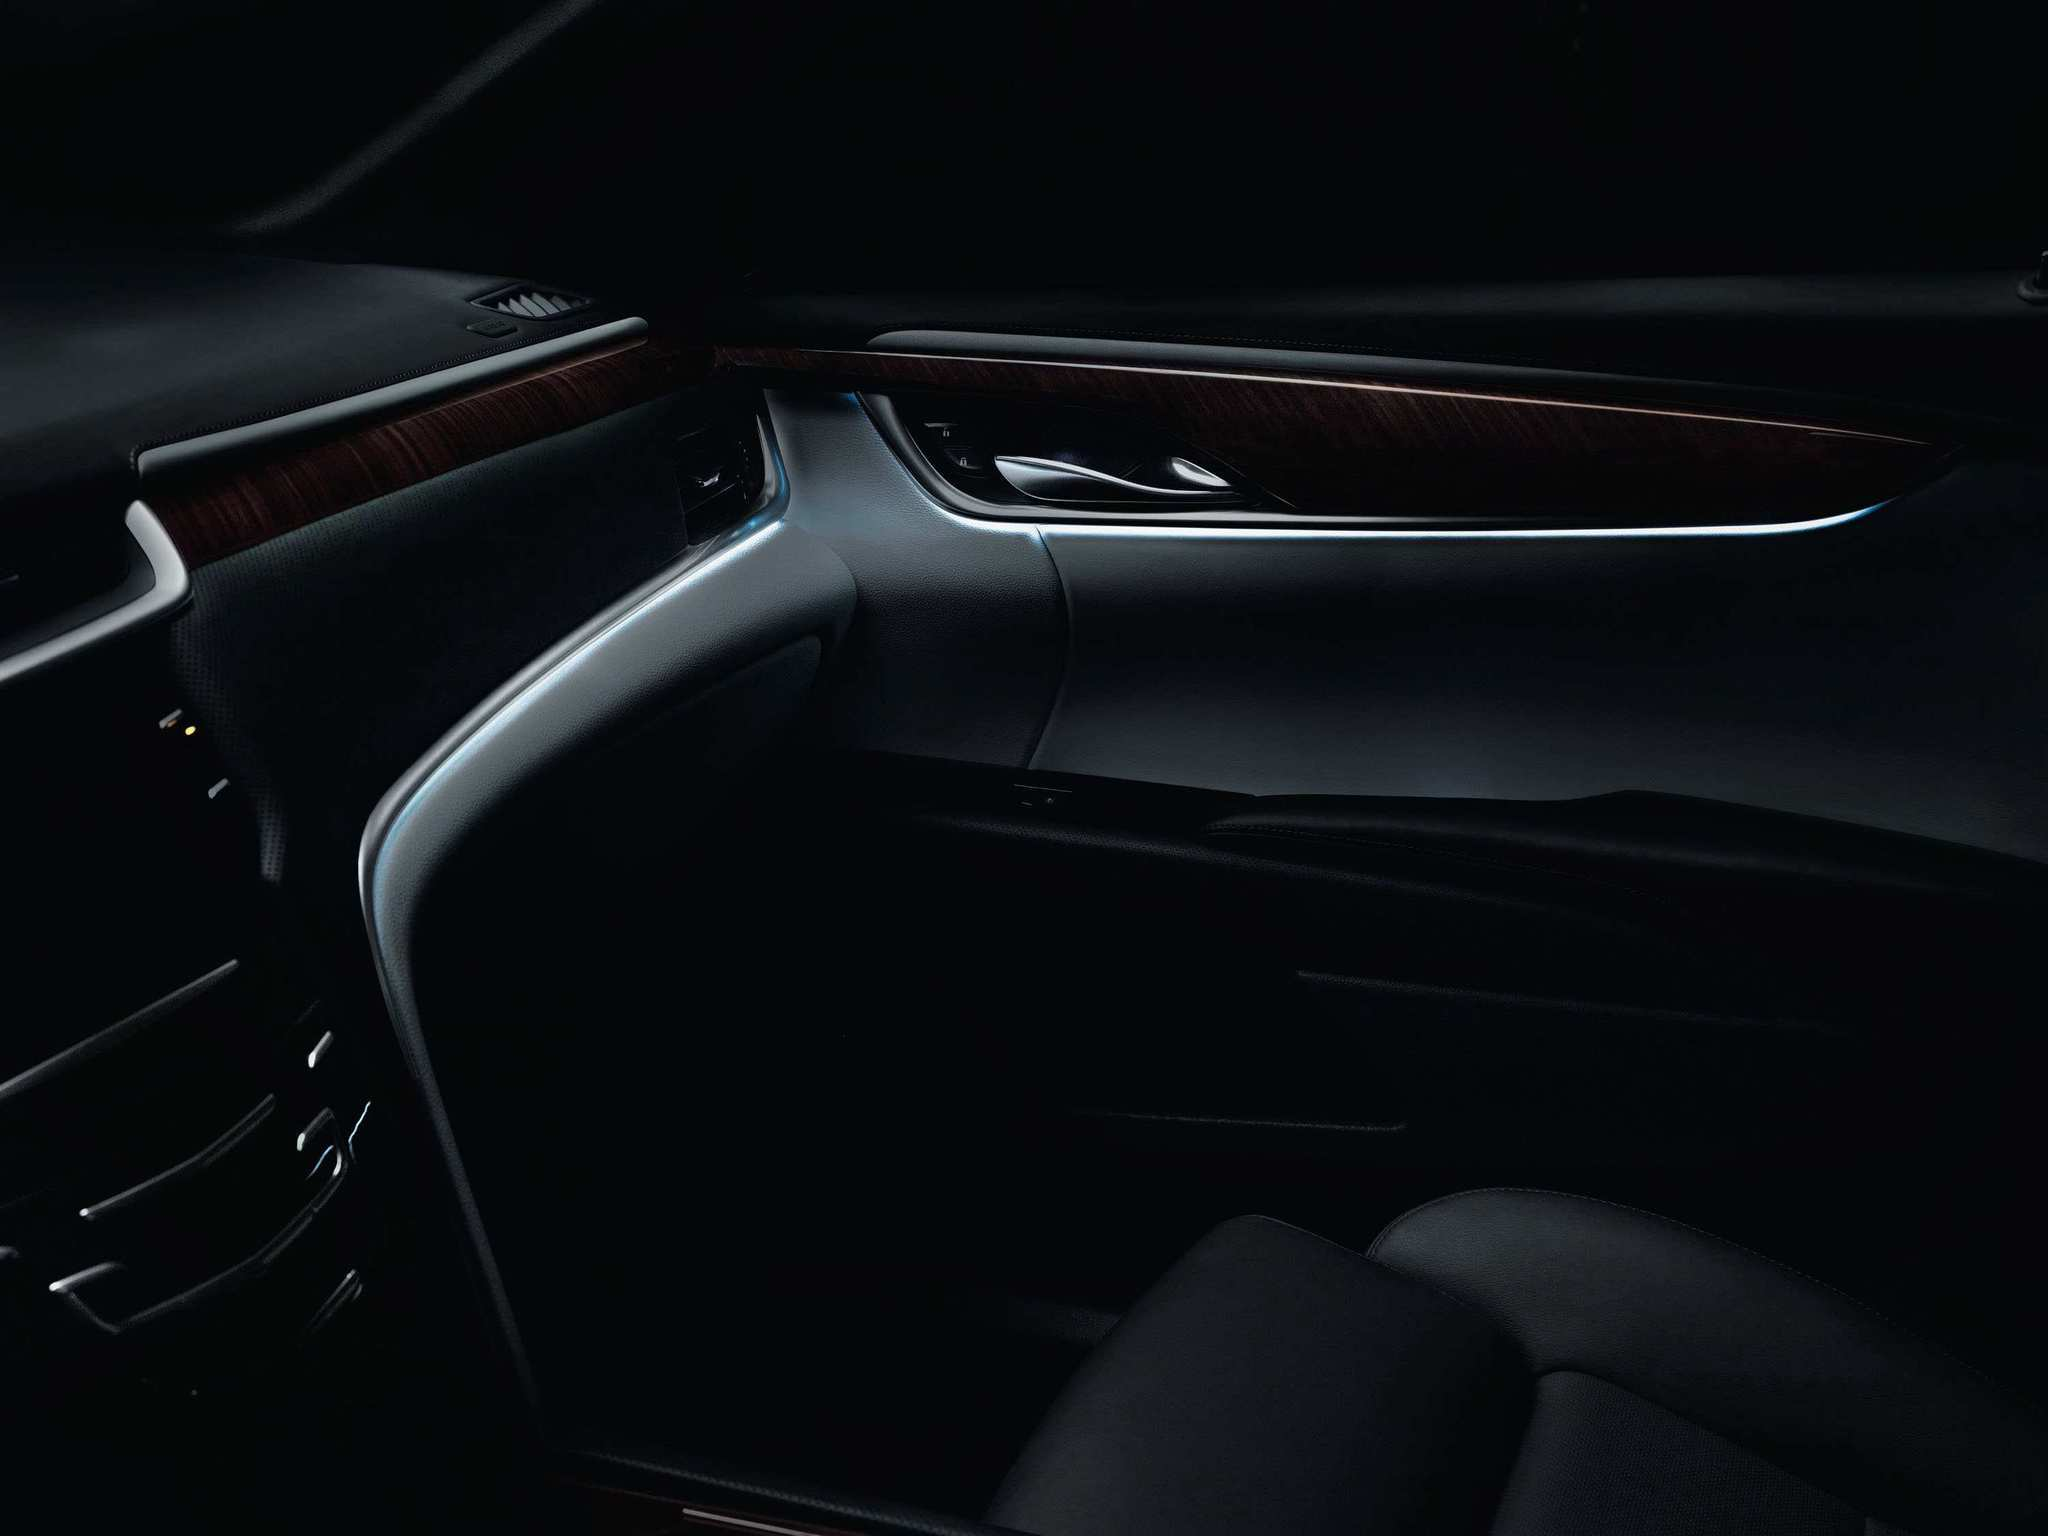 The 2013 Cadillac XTS - Solid interior